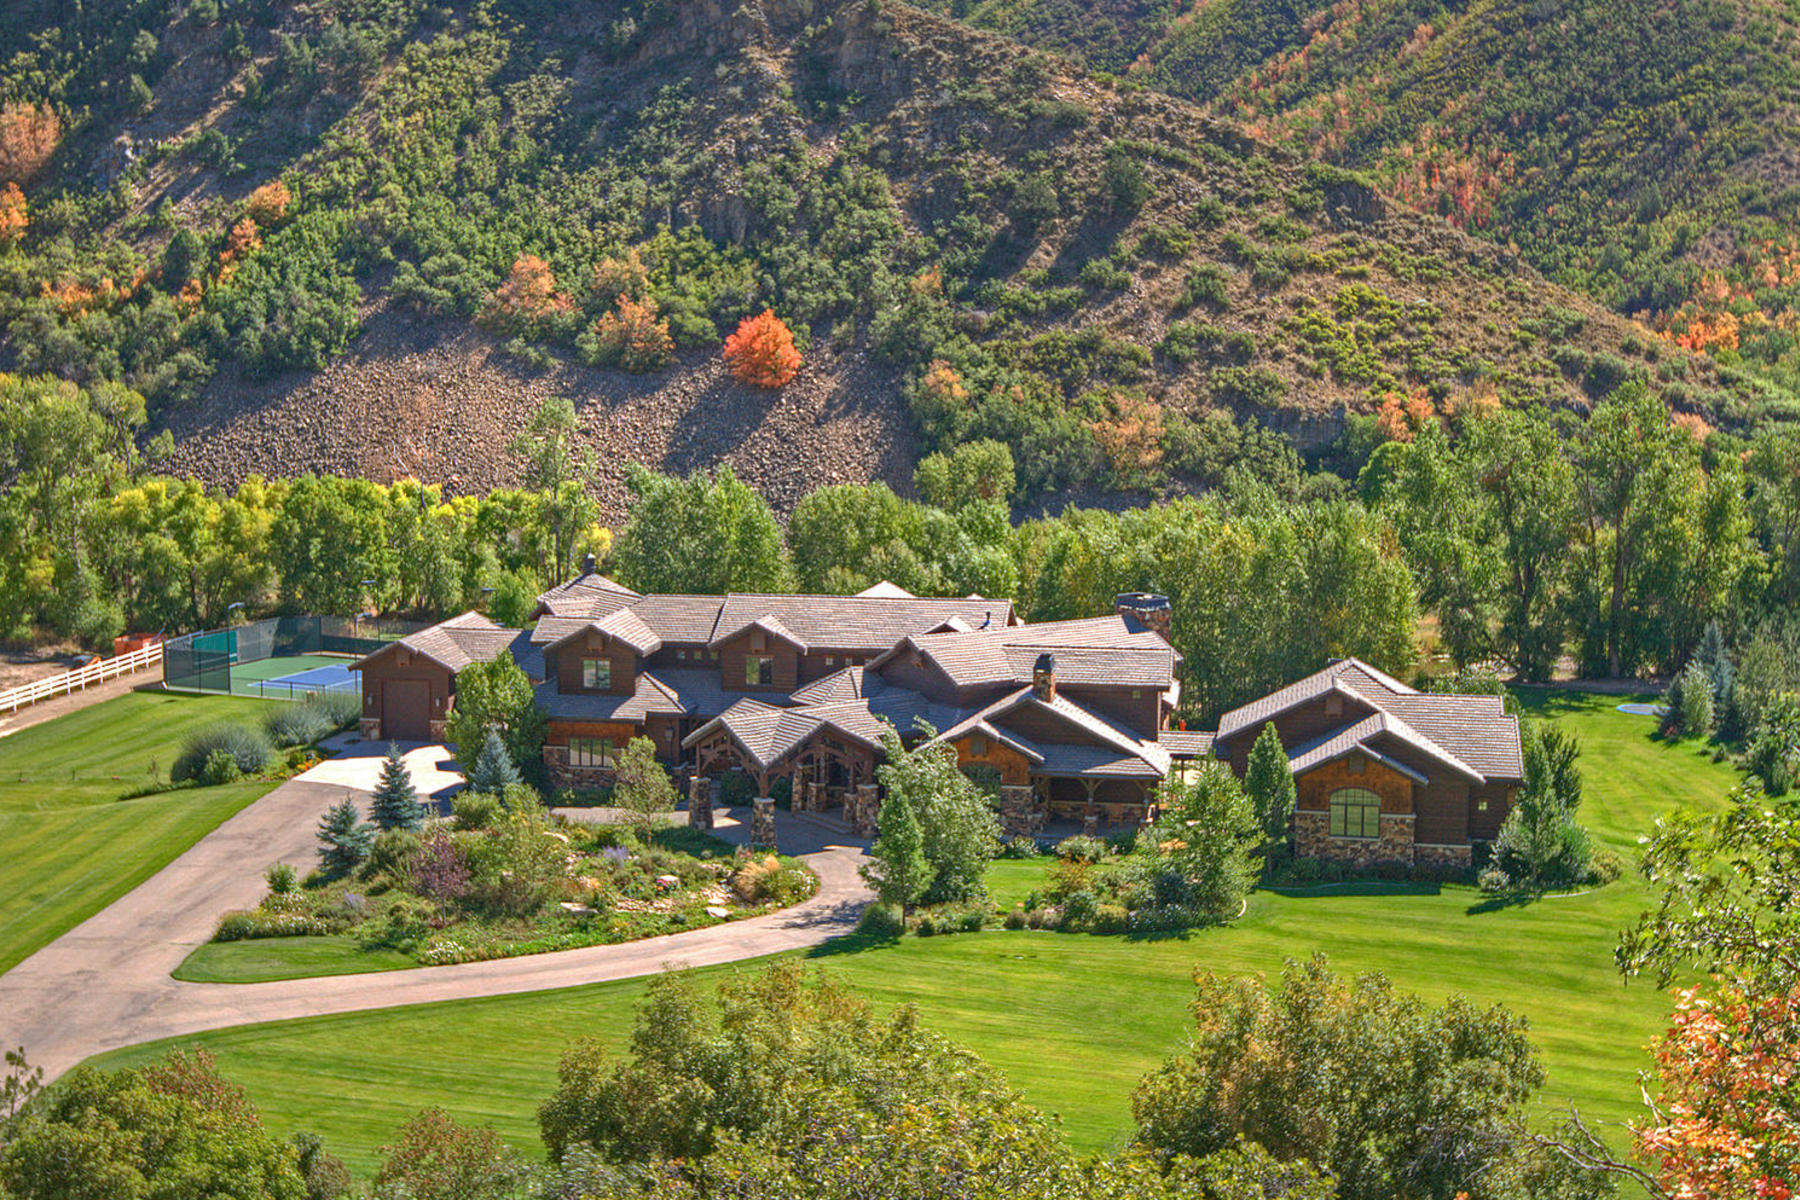 独户住宅 为 销售 在 Incredible Estate in Hobble Creek Canyon 887 Hobble Creek Canyon Rd 斯普林维尔, 犹他州, 84663 美国